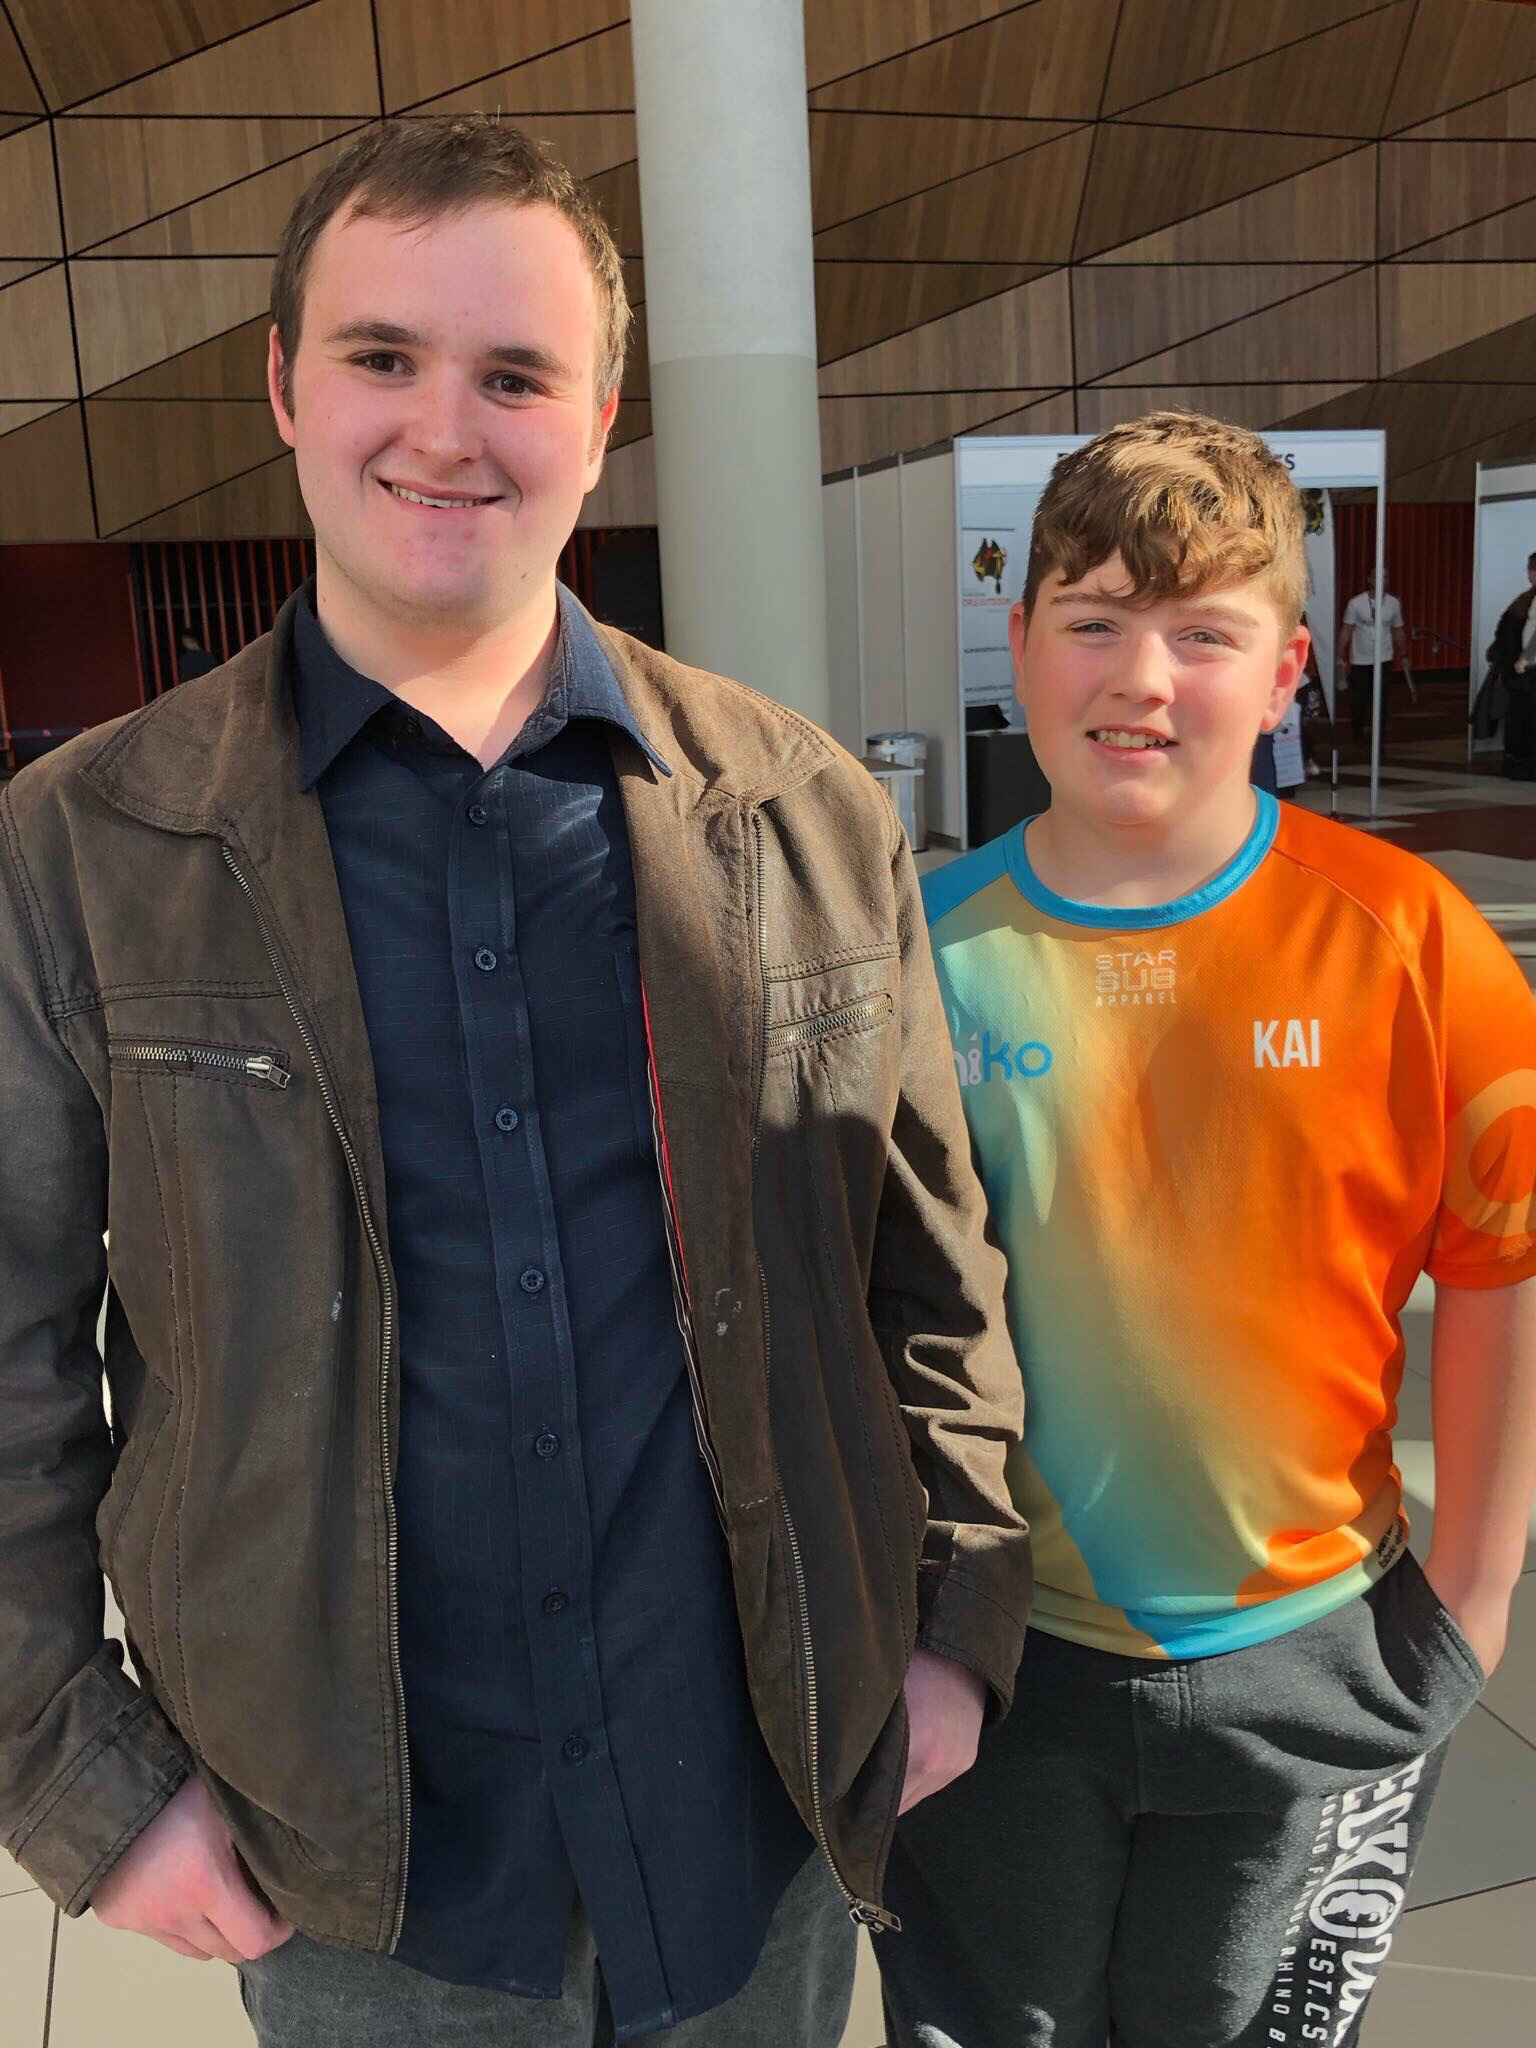 Picture Description: a photo taken at the Melbourne Convention Centre, Bryce Pace is standing next to Kai the 13 year old founder of Kaiko Fidgets.